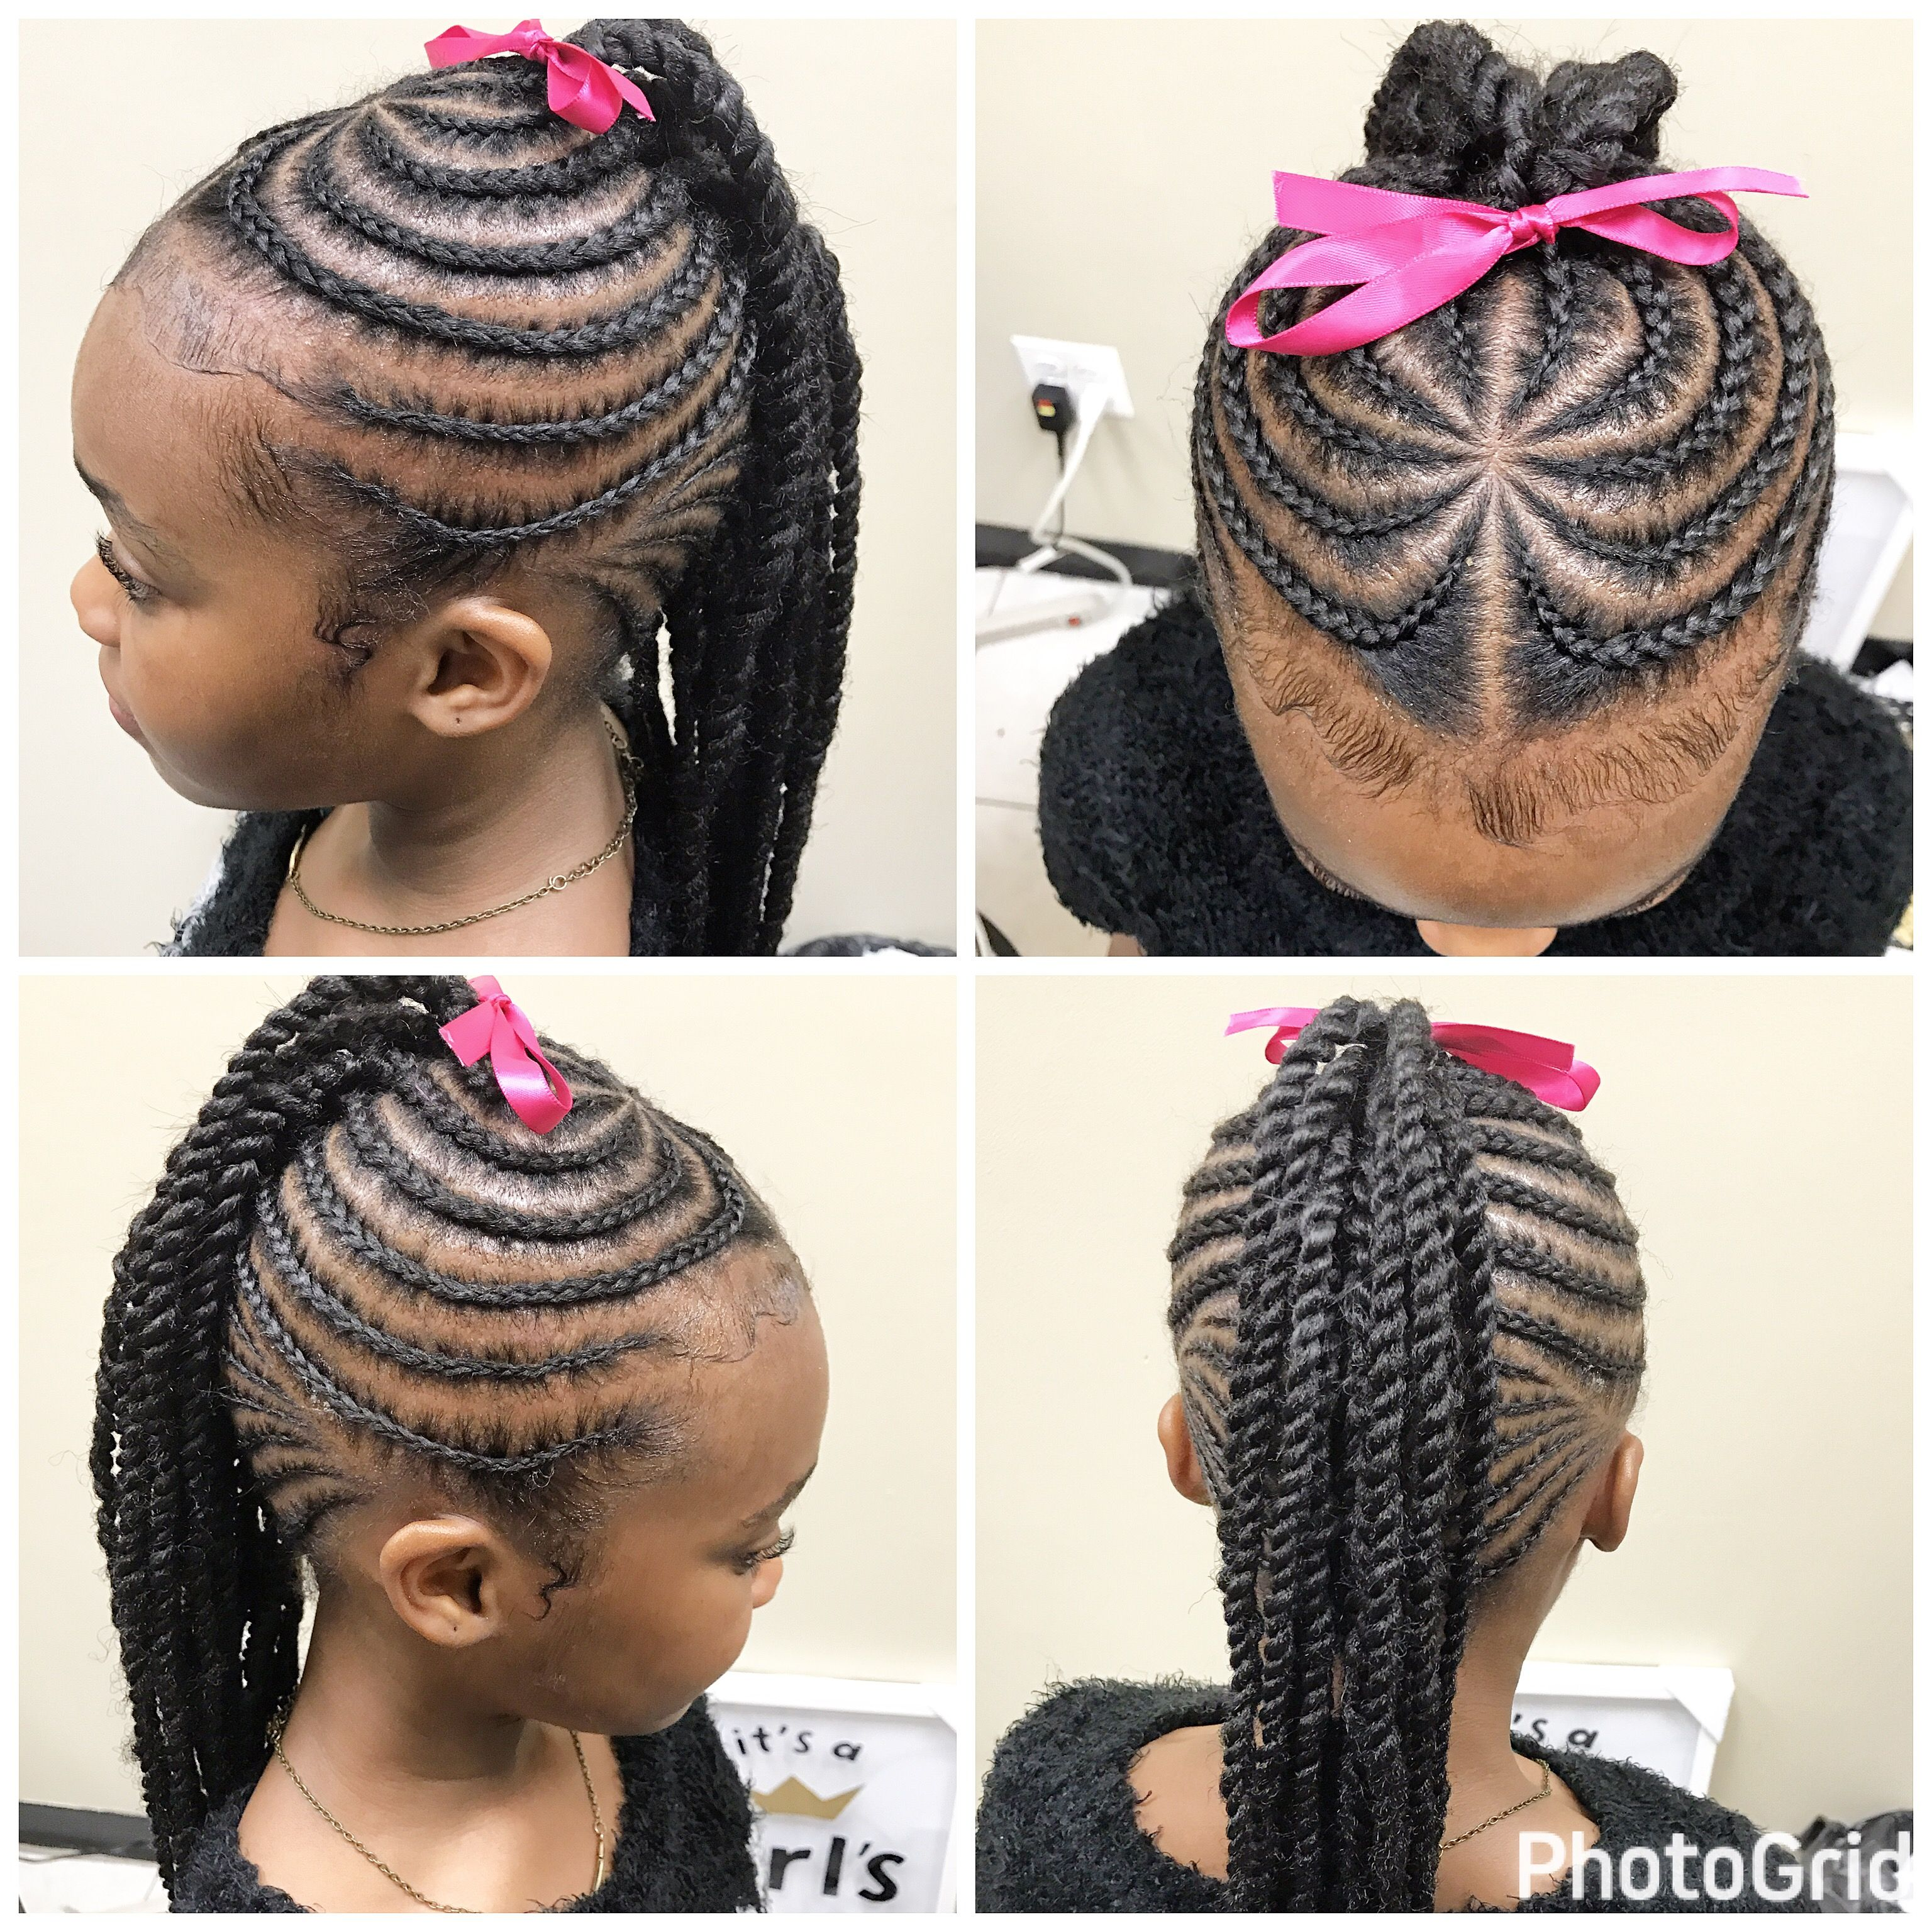 Braid color combo inspiration for summer kid braids hair style